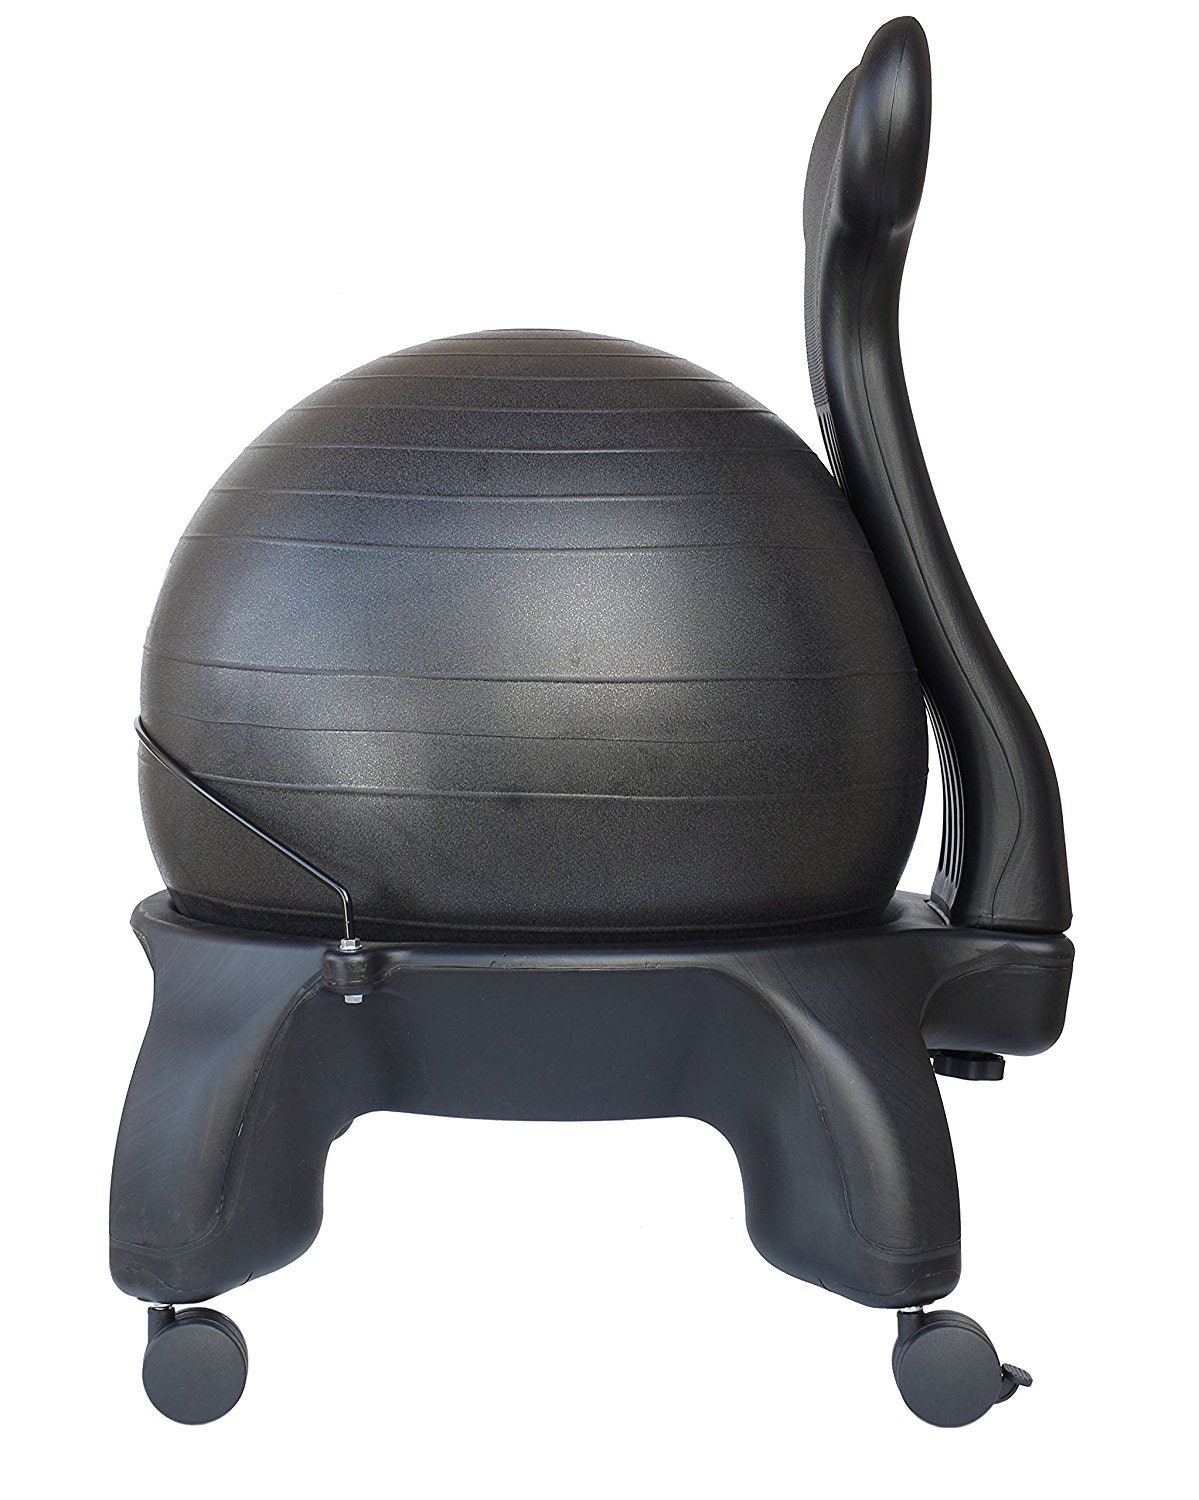 Exercise Ball Desk Chair The 5 Best Balance Ball Chairs For The Office